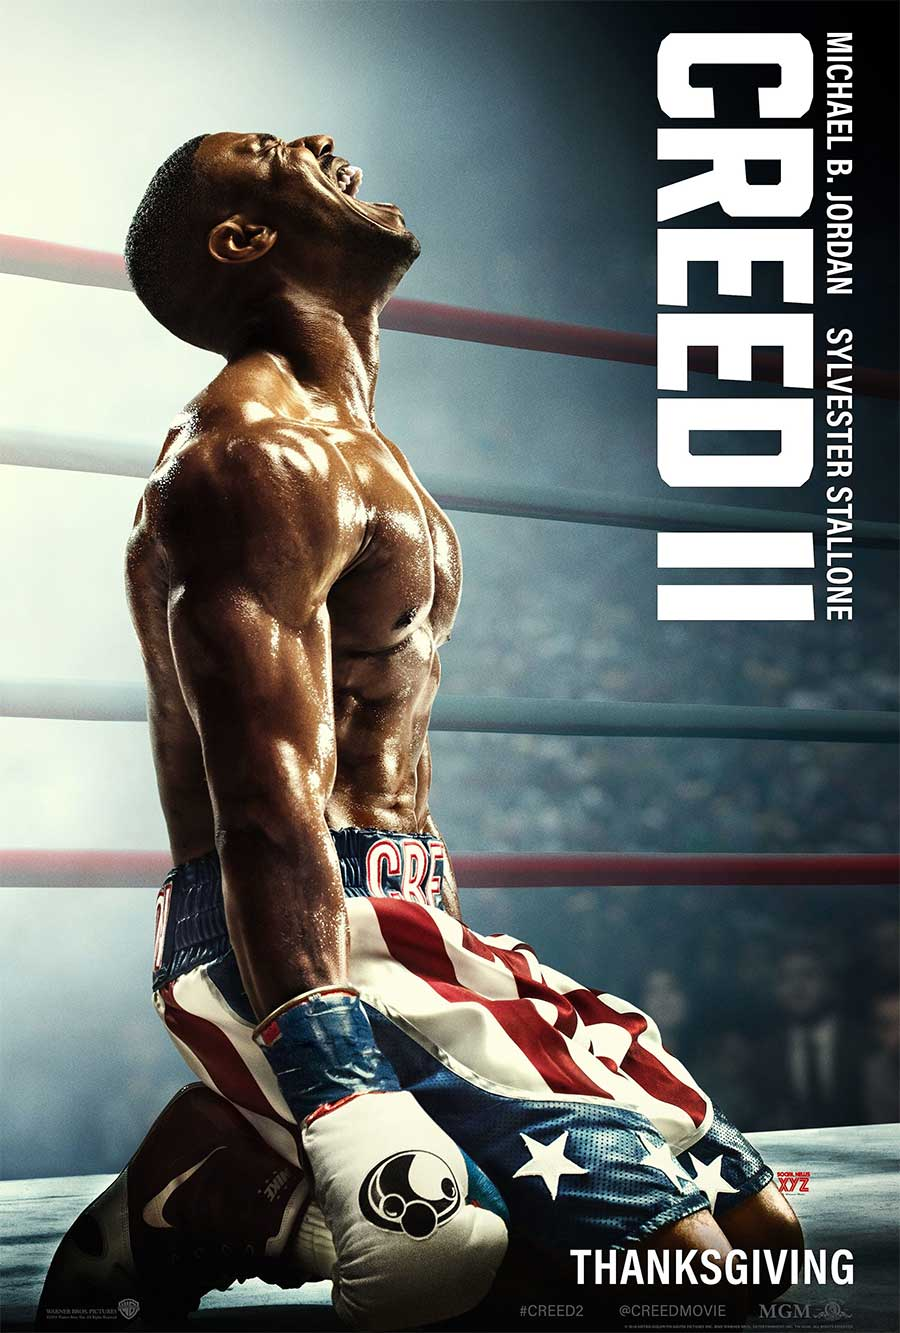 Poster for Creed II (LUX)